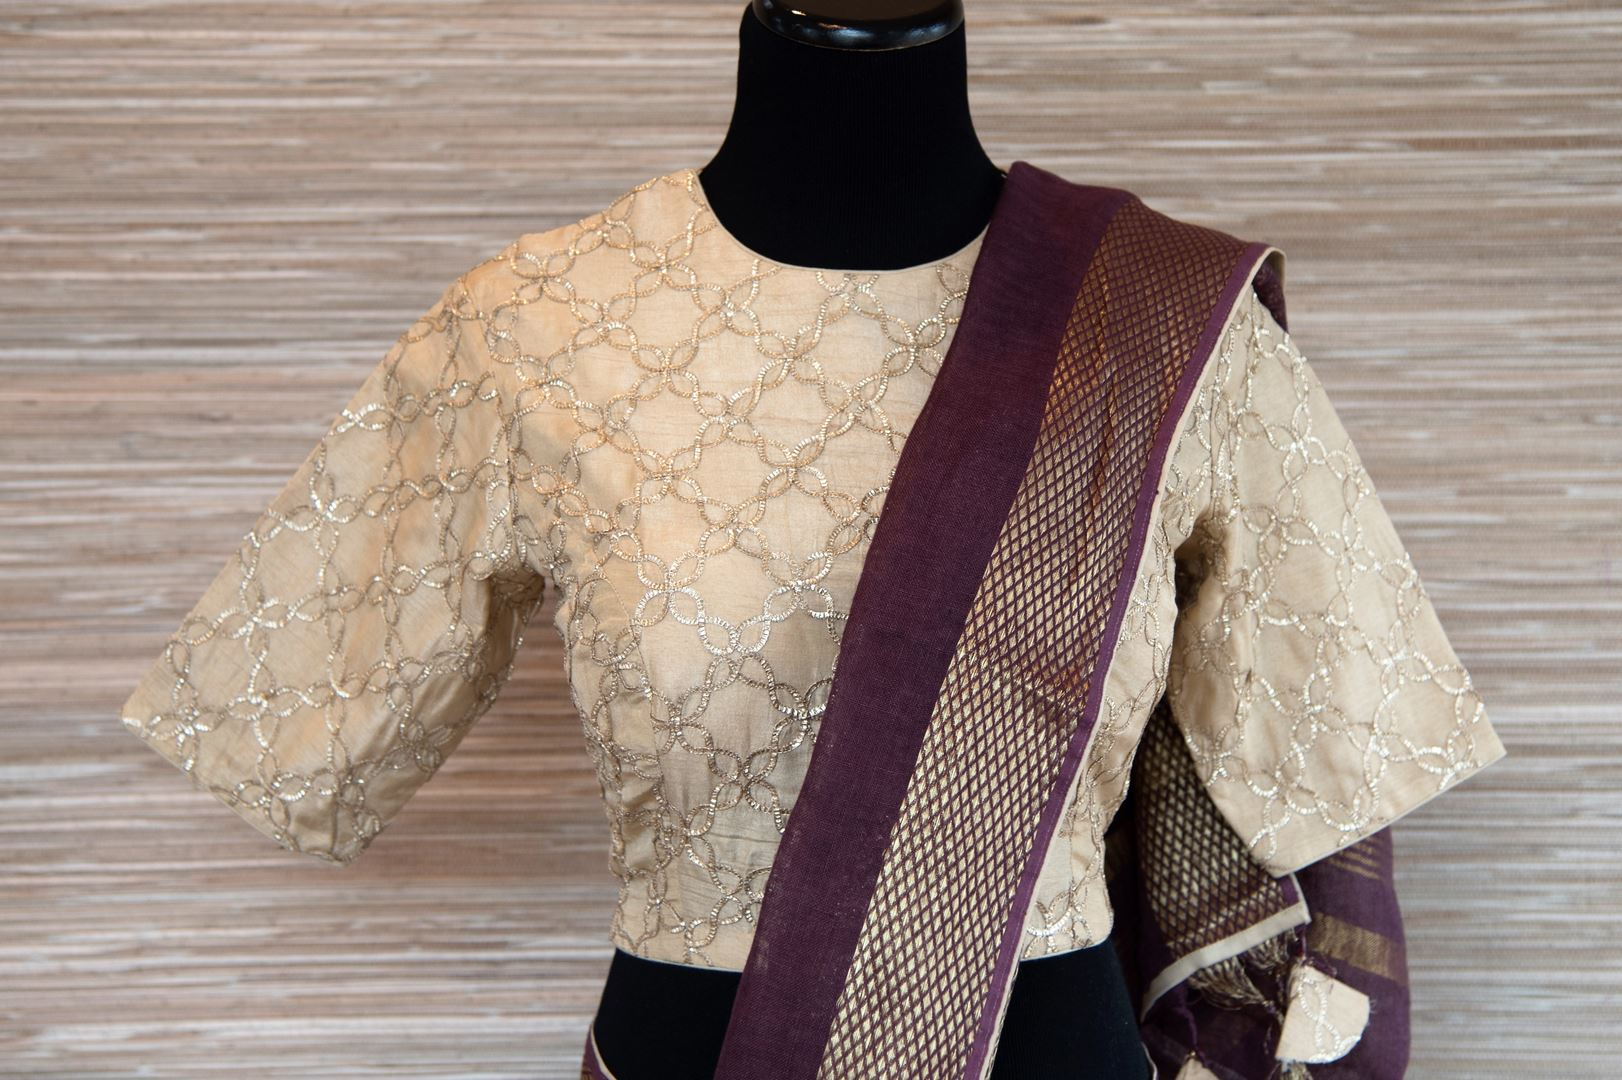 Buy purple linen saree online in USA with zari border and bird nest motifs. Make your ethnic style even more stylish with an exclusive range on Indian handloom sarees from Pure Elegance Indian fashion store in USA. -blouse pallu